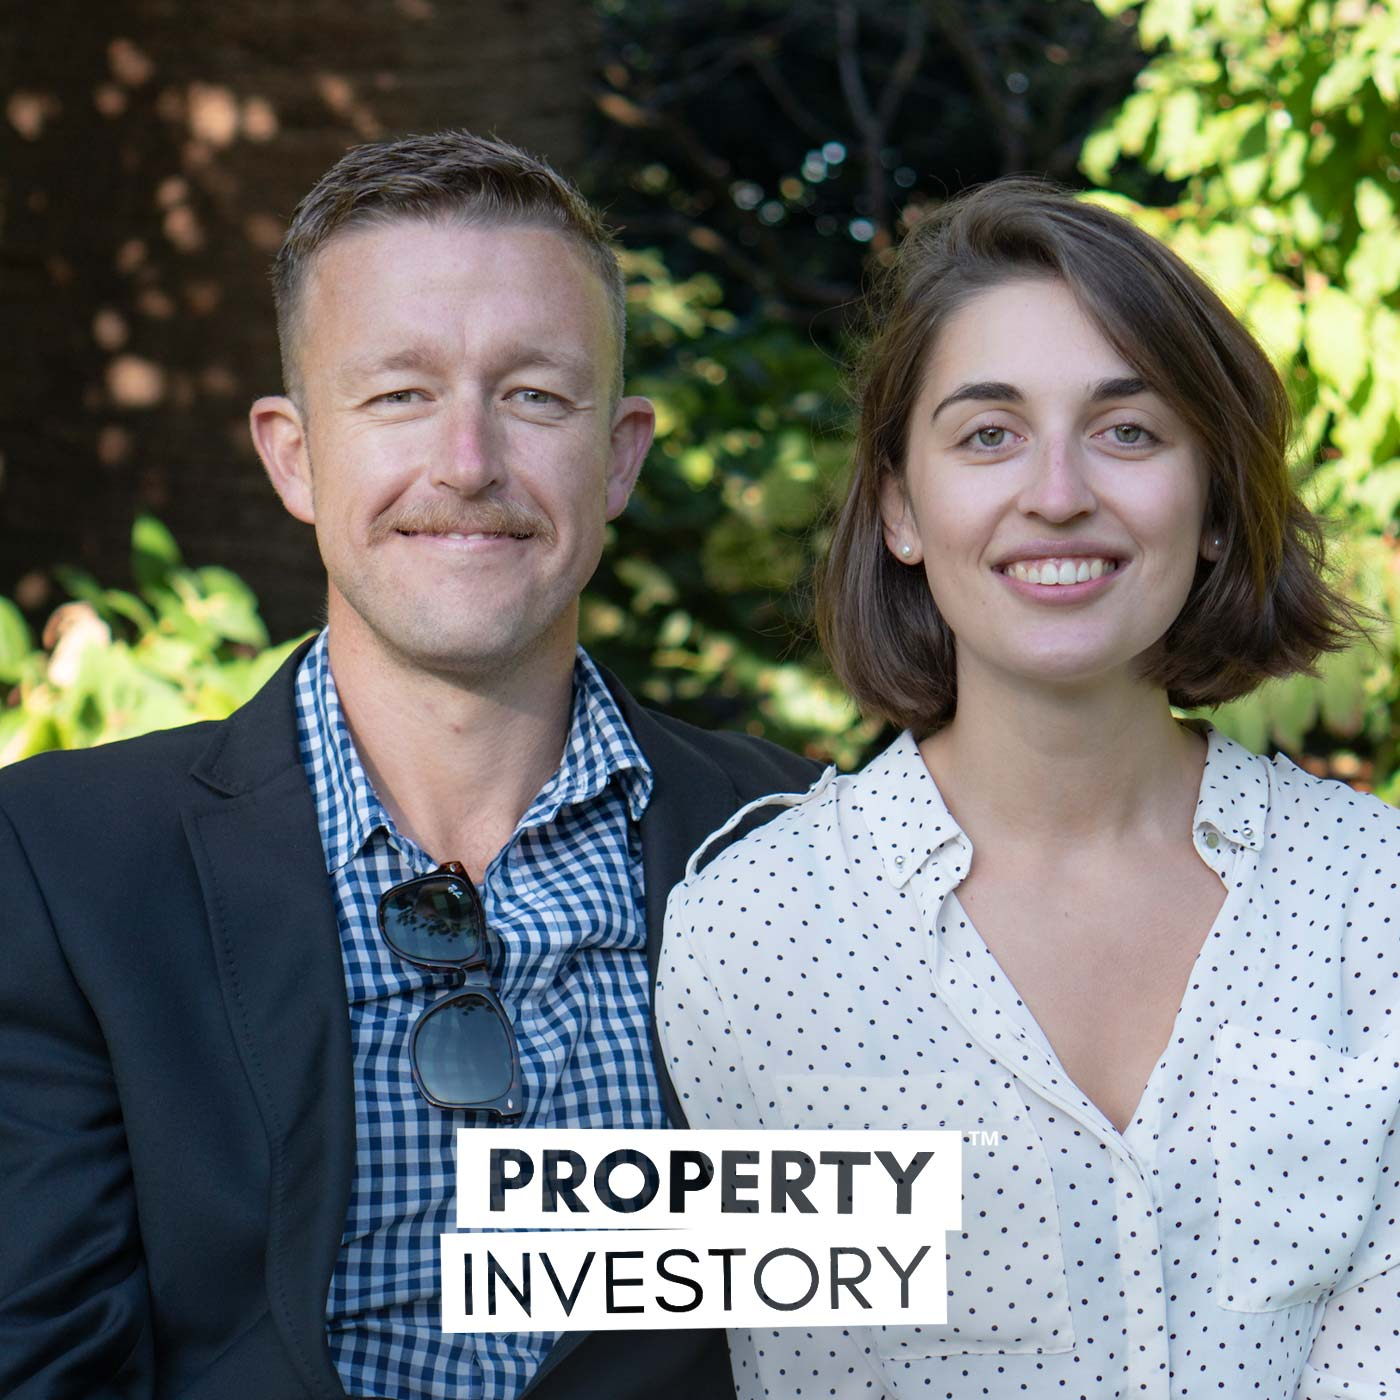 Leveraging Equity Into Another Property With Glenn McGrath